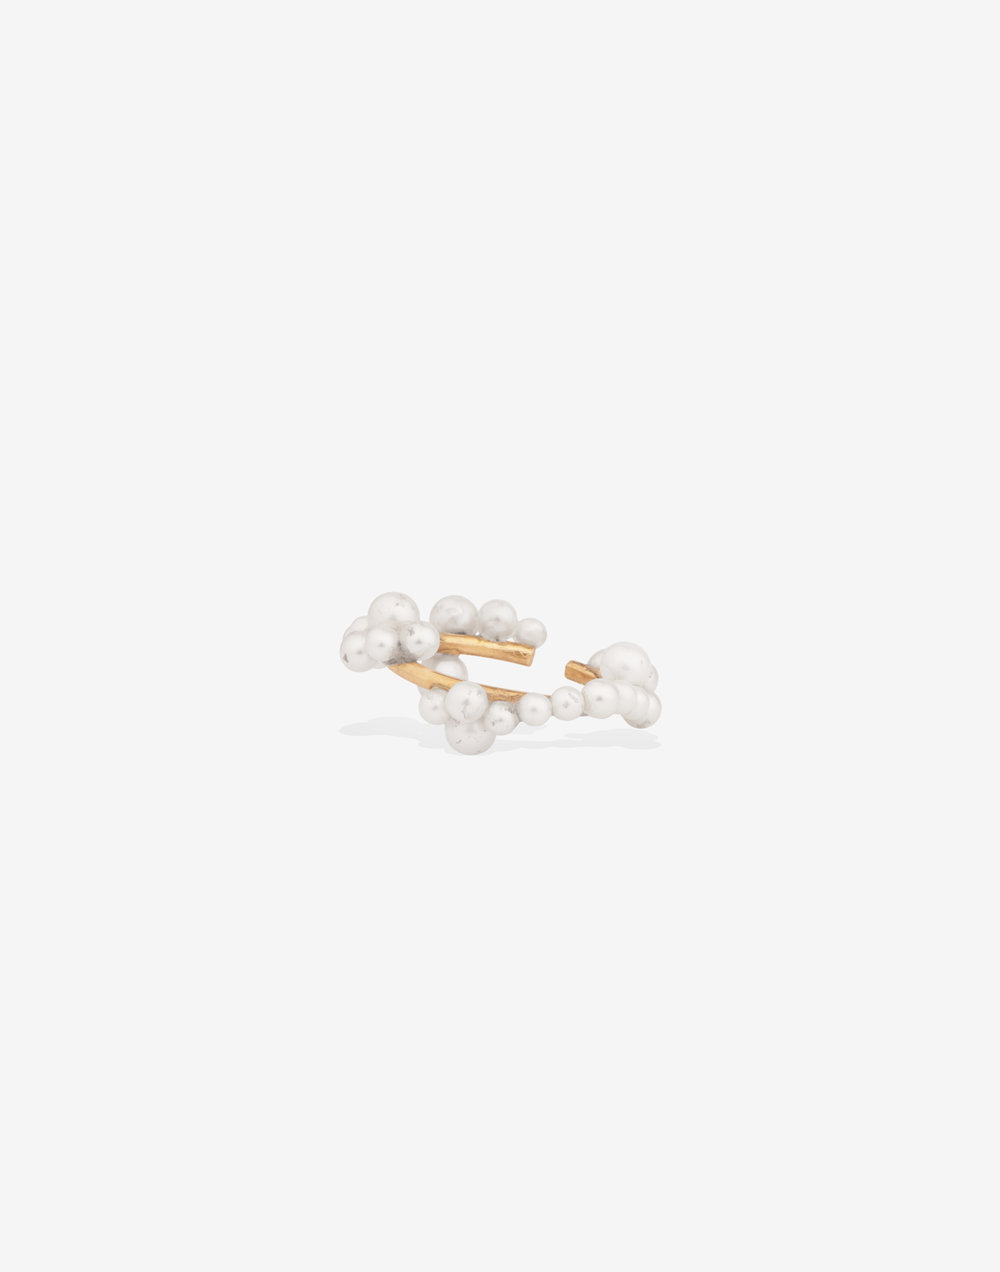 Completedworks-Tied-18ct-Yellow-Gold-plating-on-Silver-Ear-Cuff-A1019-2.jpg